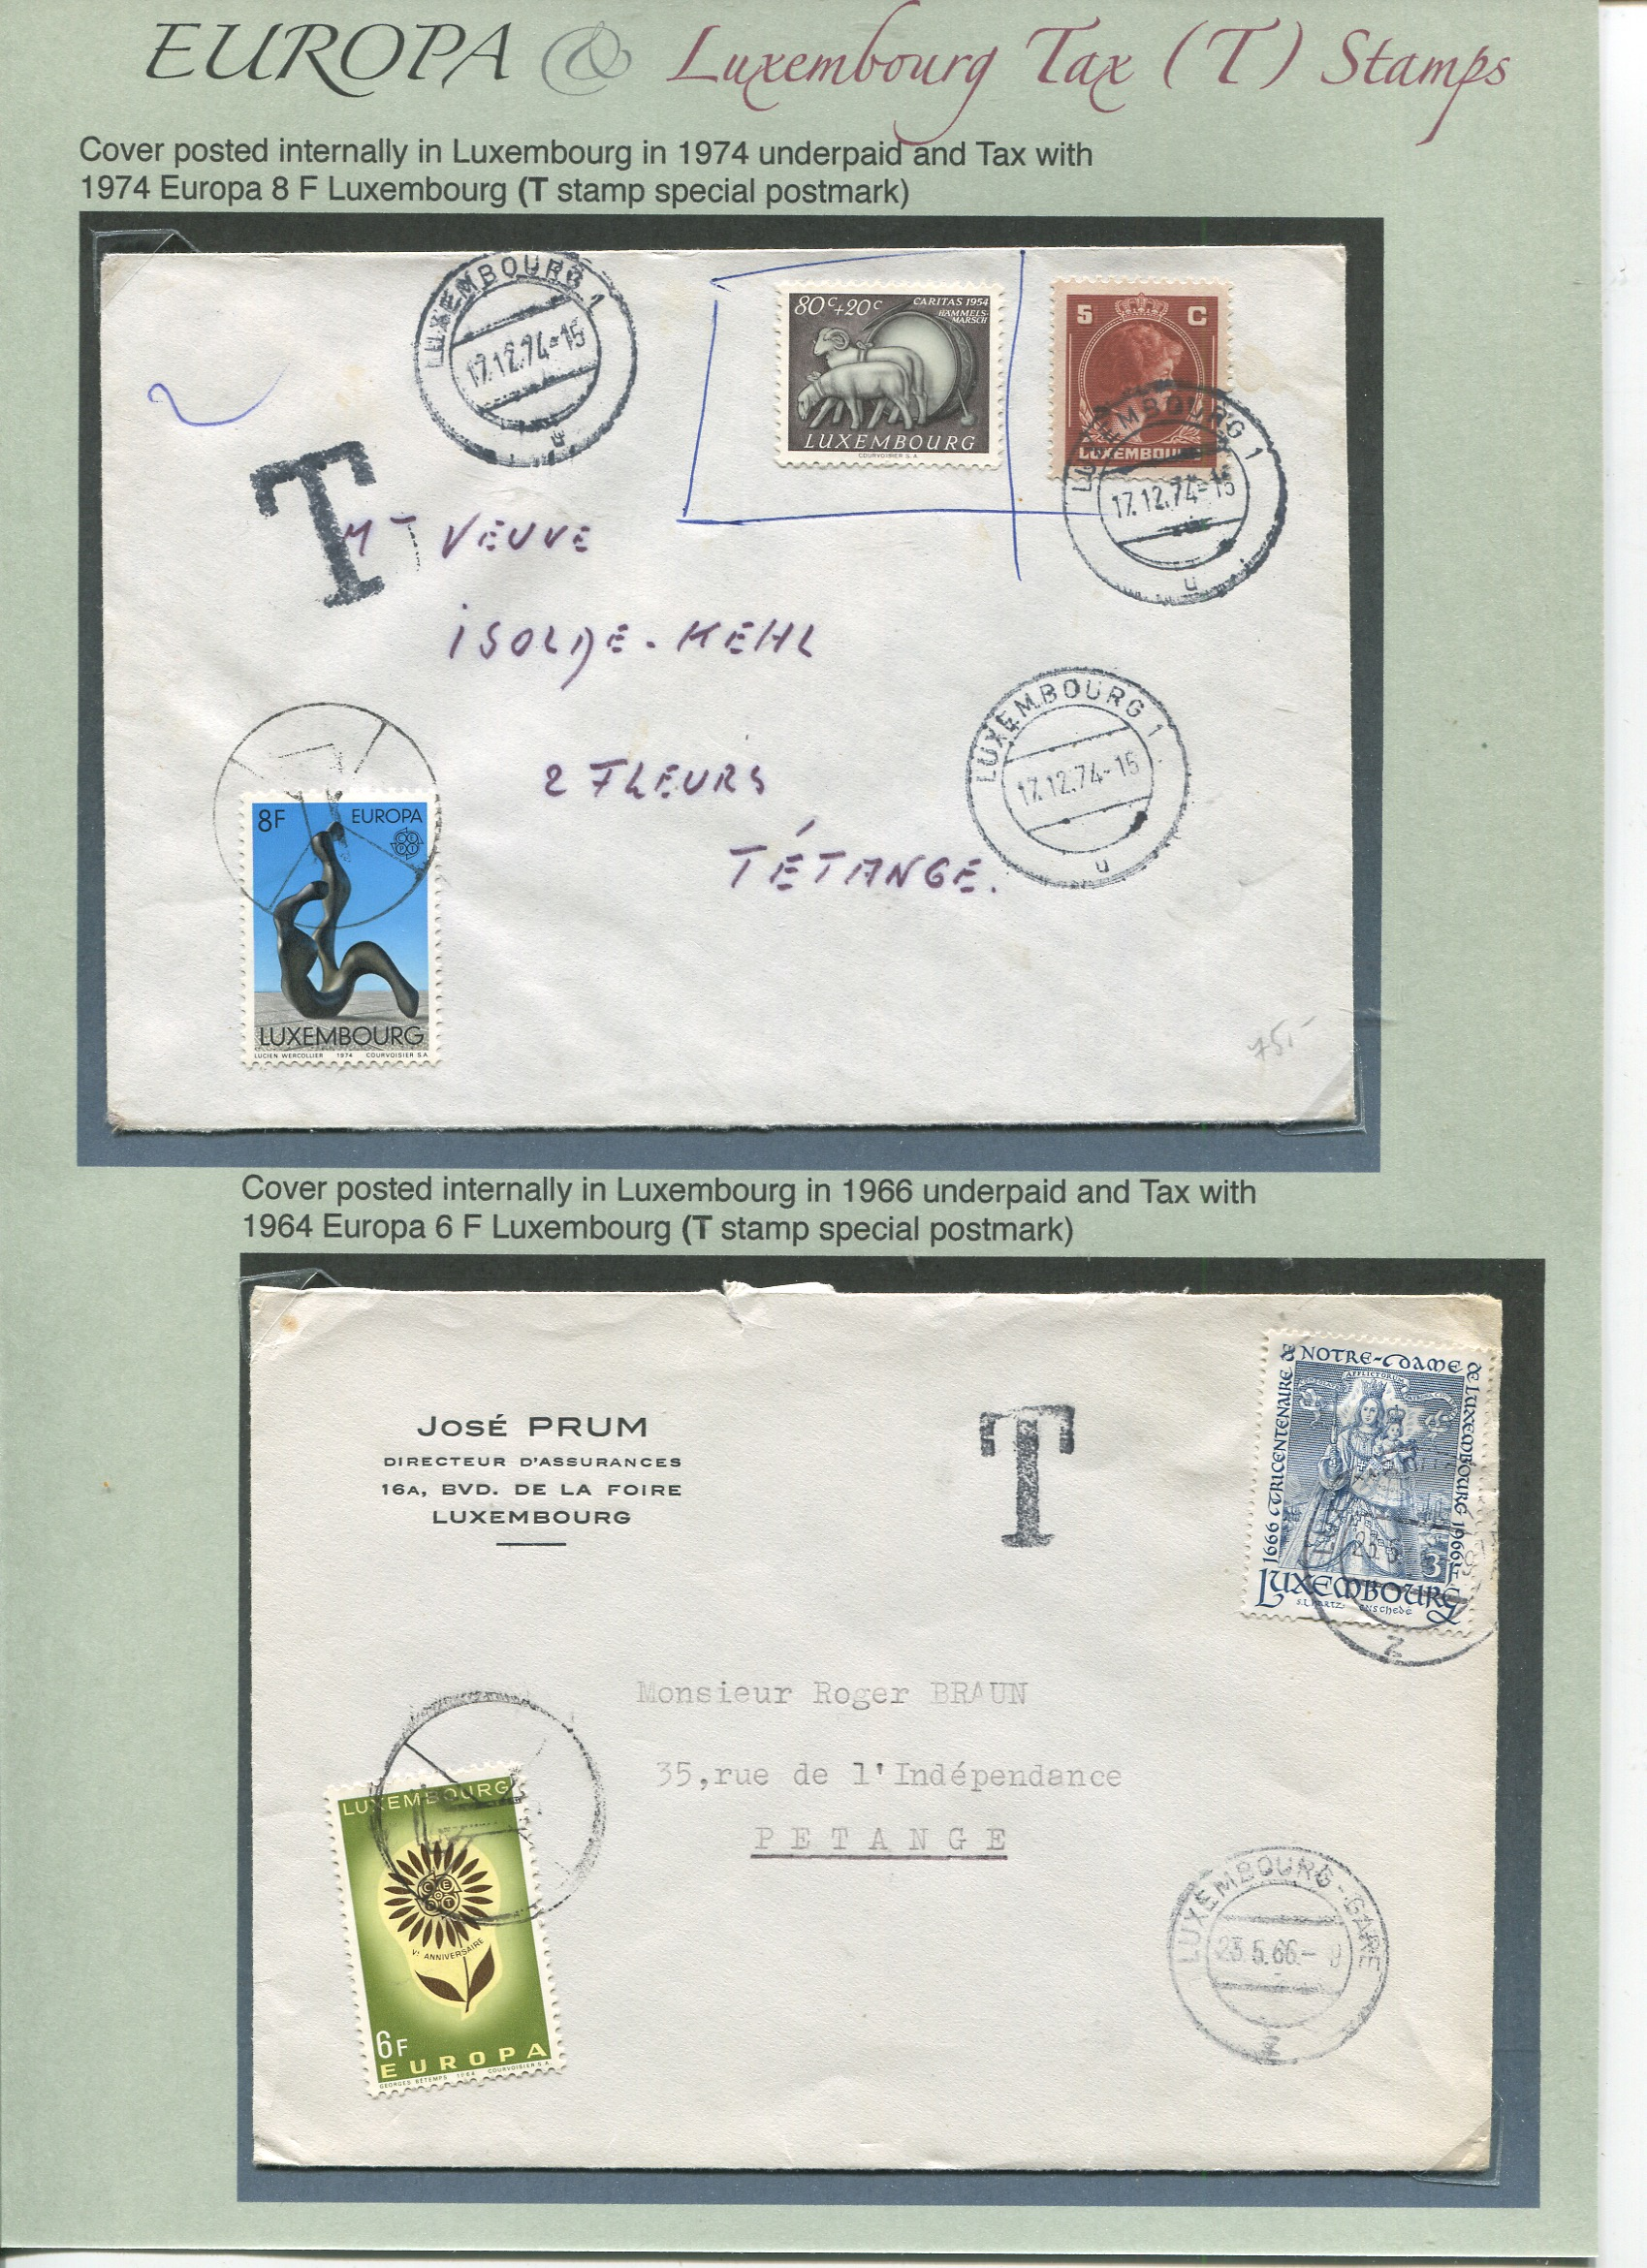 Europa stamps used as TAX stamps by Luxembourg